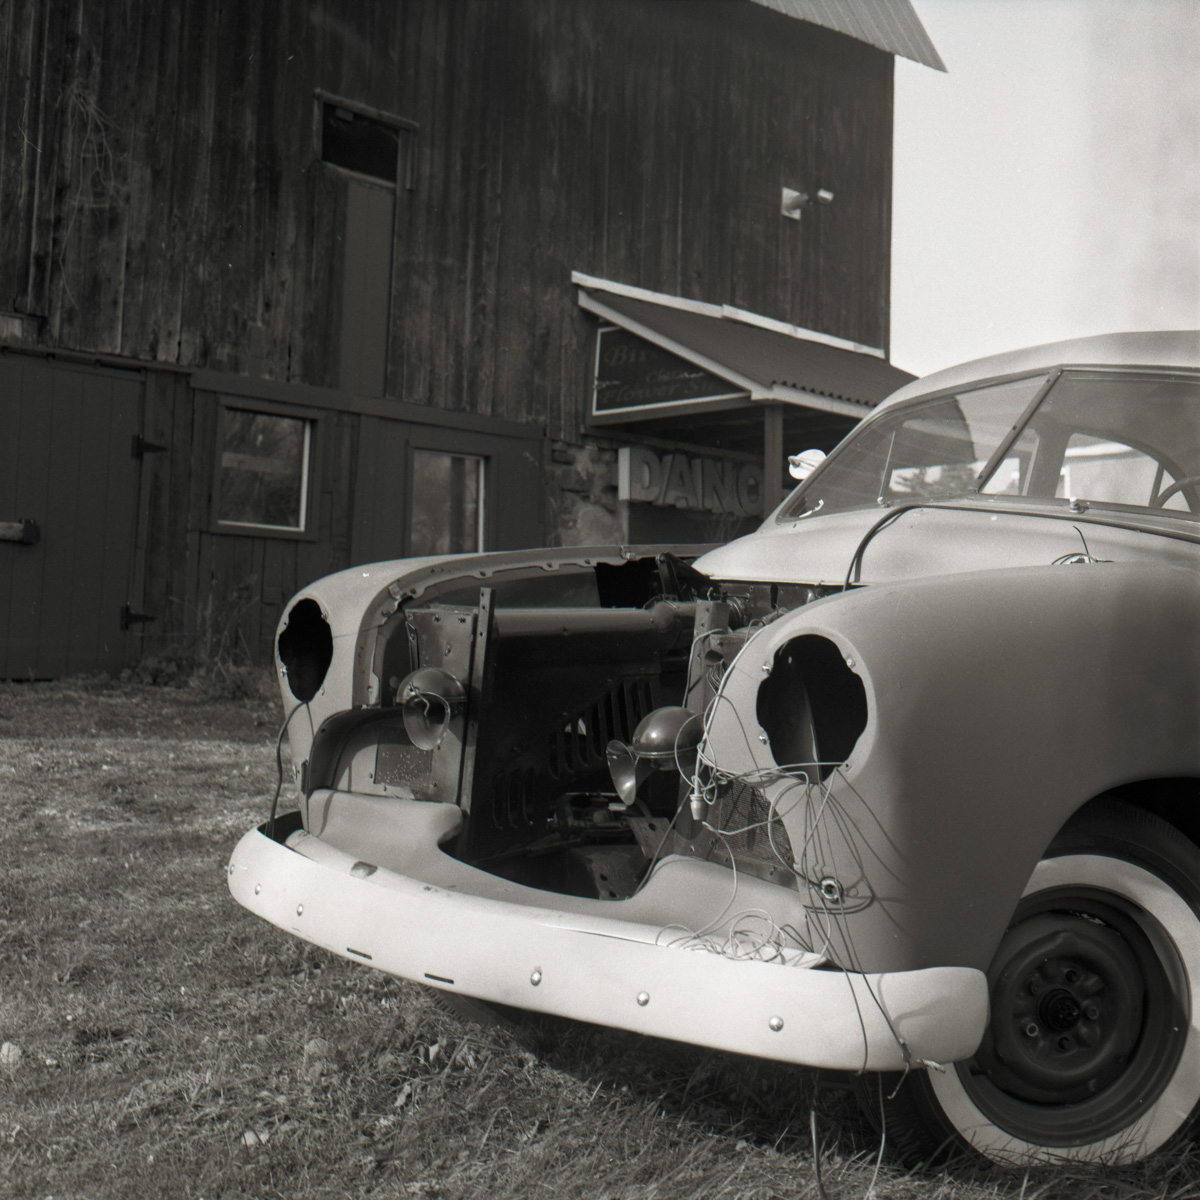 5 Frames With... ILFORD FP4 PLUS (EI 125 / 120 format / Mamiya C330 Professional) - by Jack Stouffer